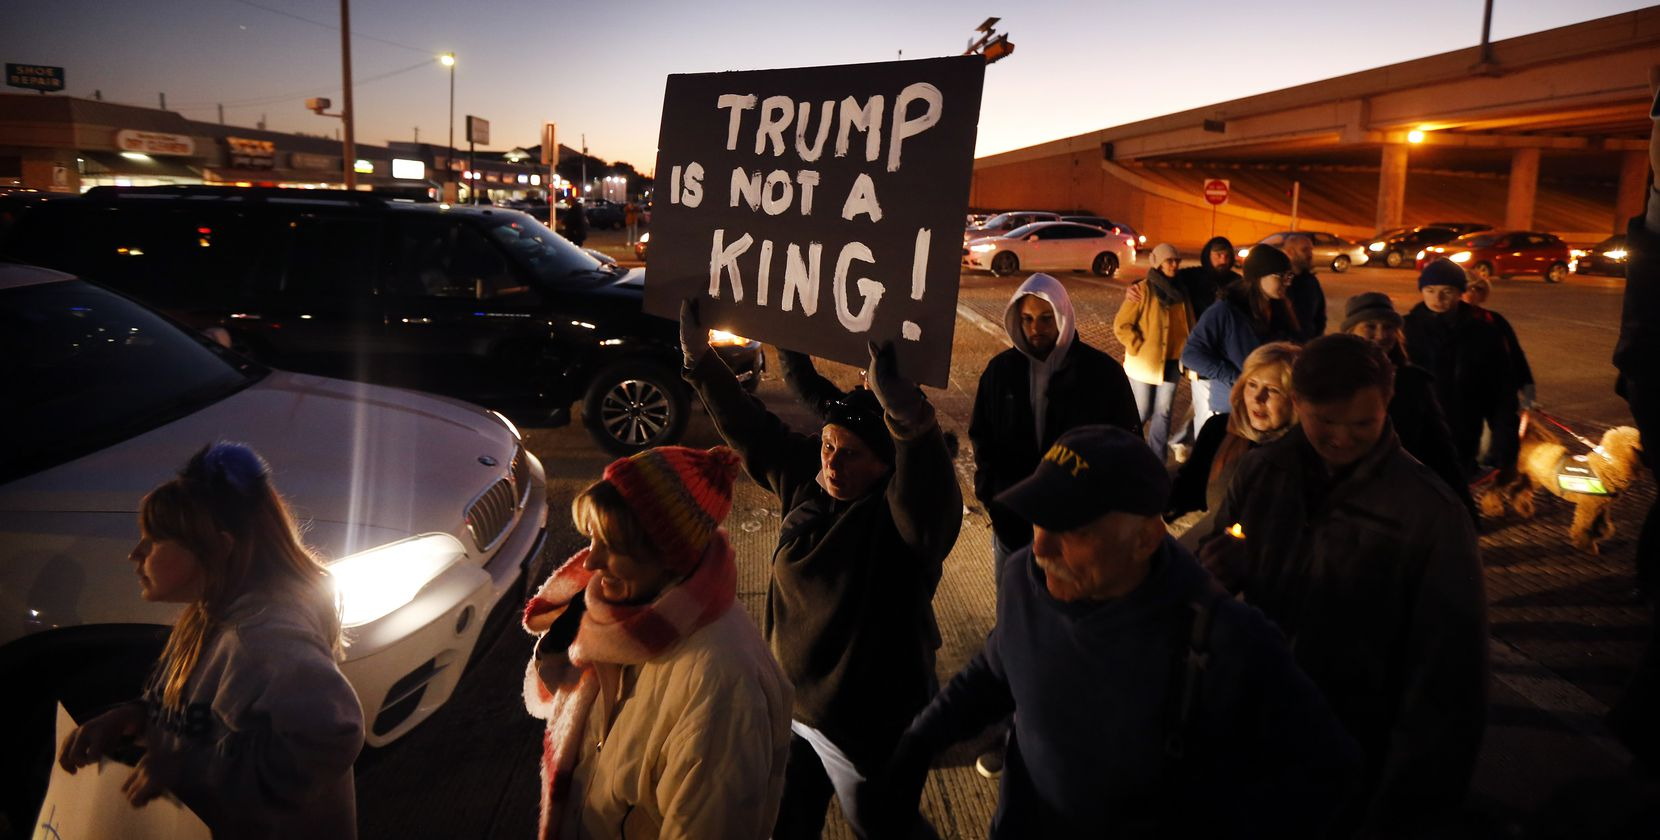 Supporters of U.S. Representative Colin Allred arrive outside his Richardson, Texas office at the intersection of Belt Line Rd and Central Expressway to show their support of President Donald Trump's impeachment, Tuesday evening, December 17, 2019.